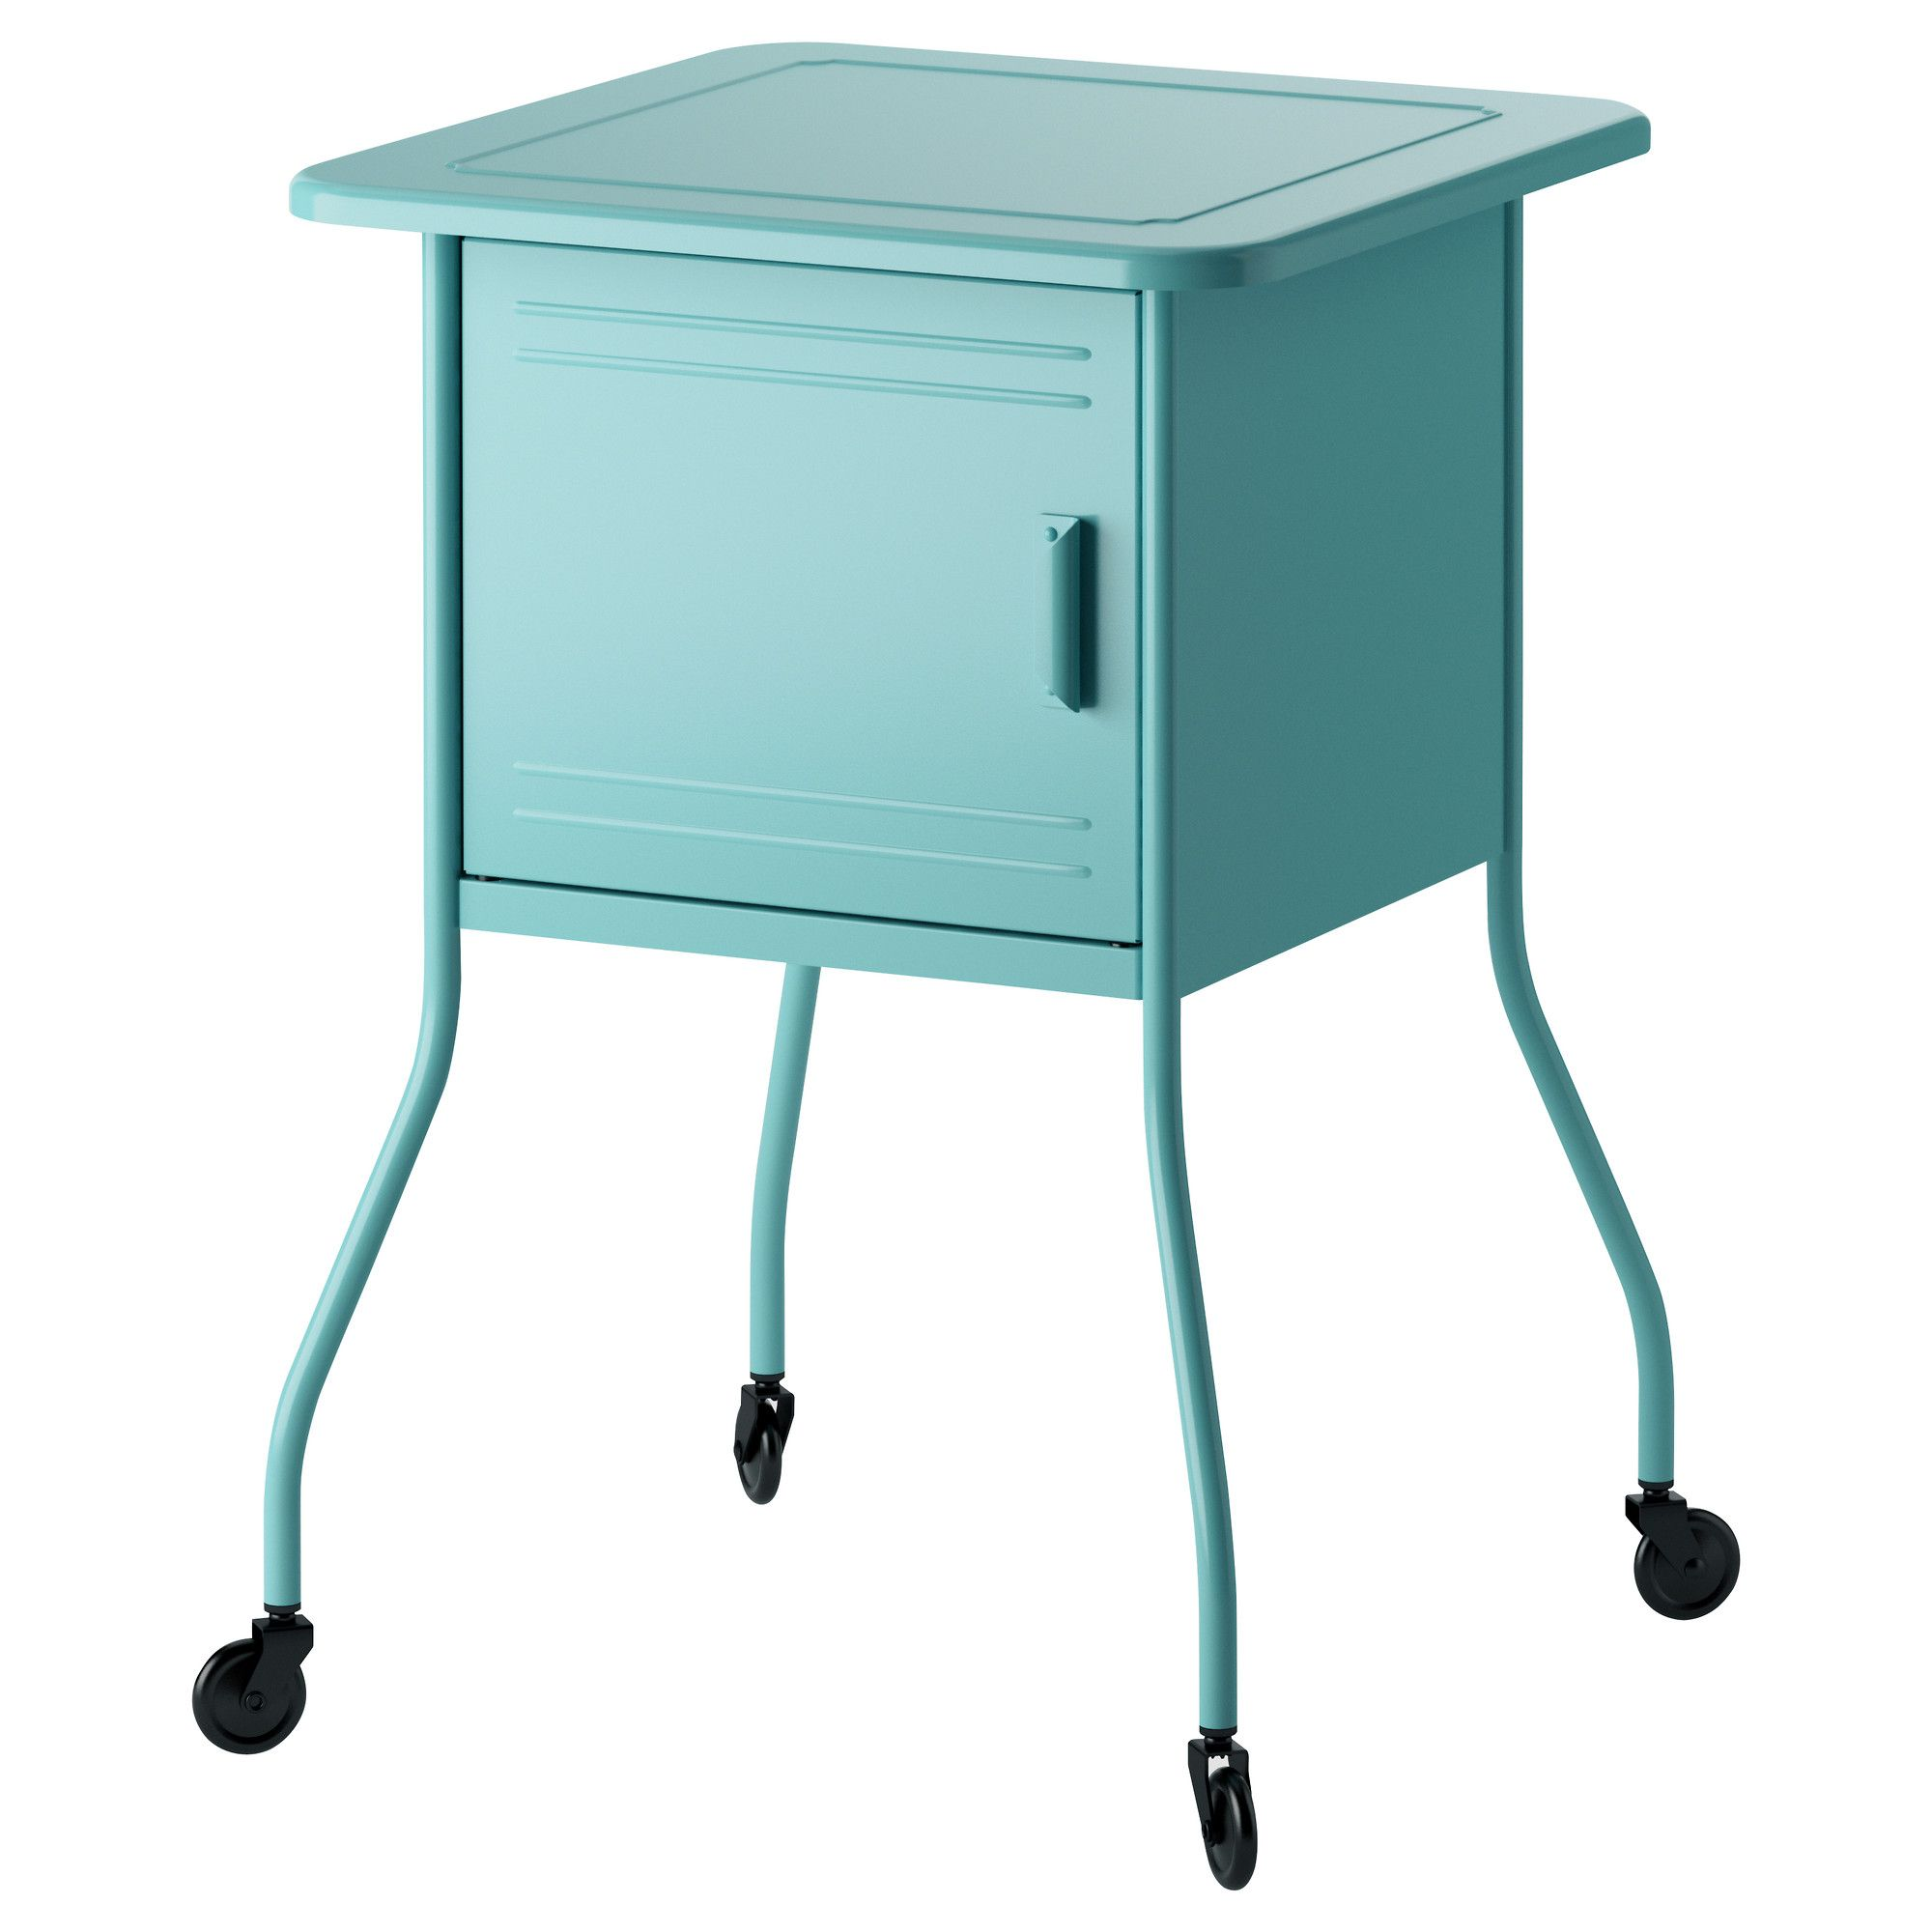 Ikea Vettre Bedside Table Turquoise Cm Inside There Is Room For An Extension Socket Your Chargers